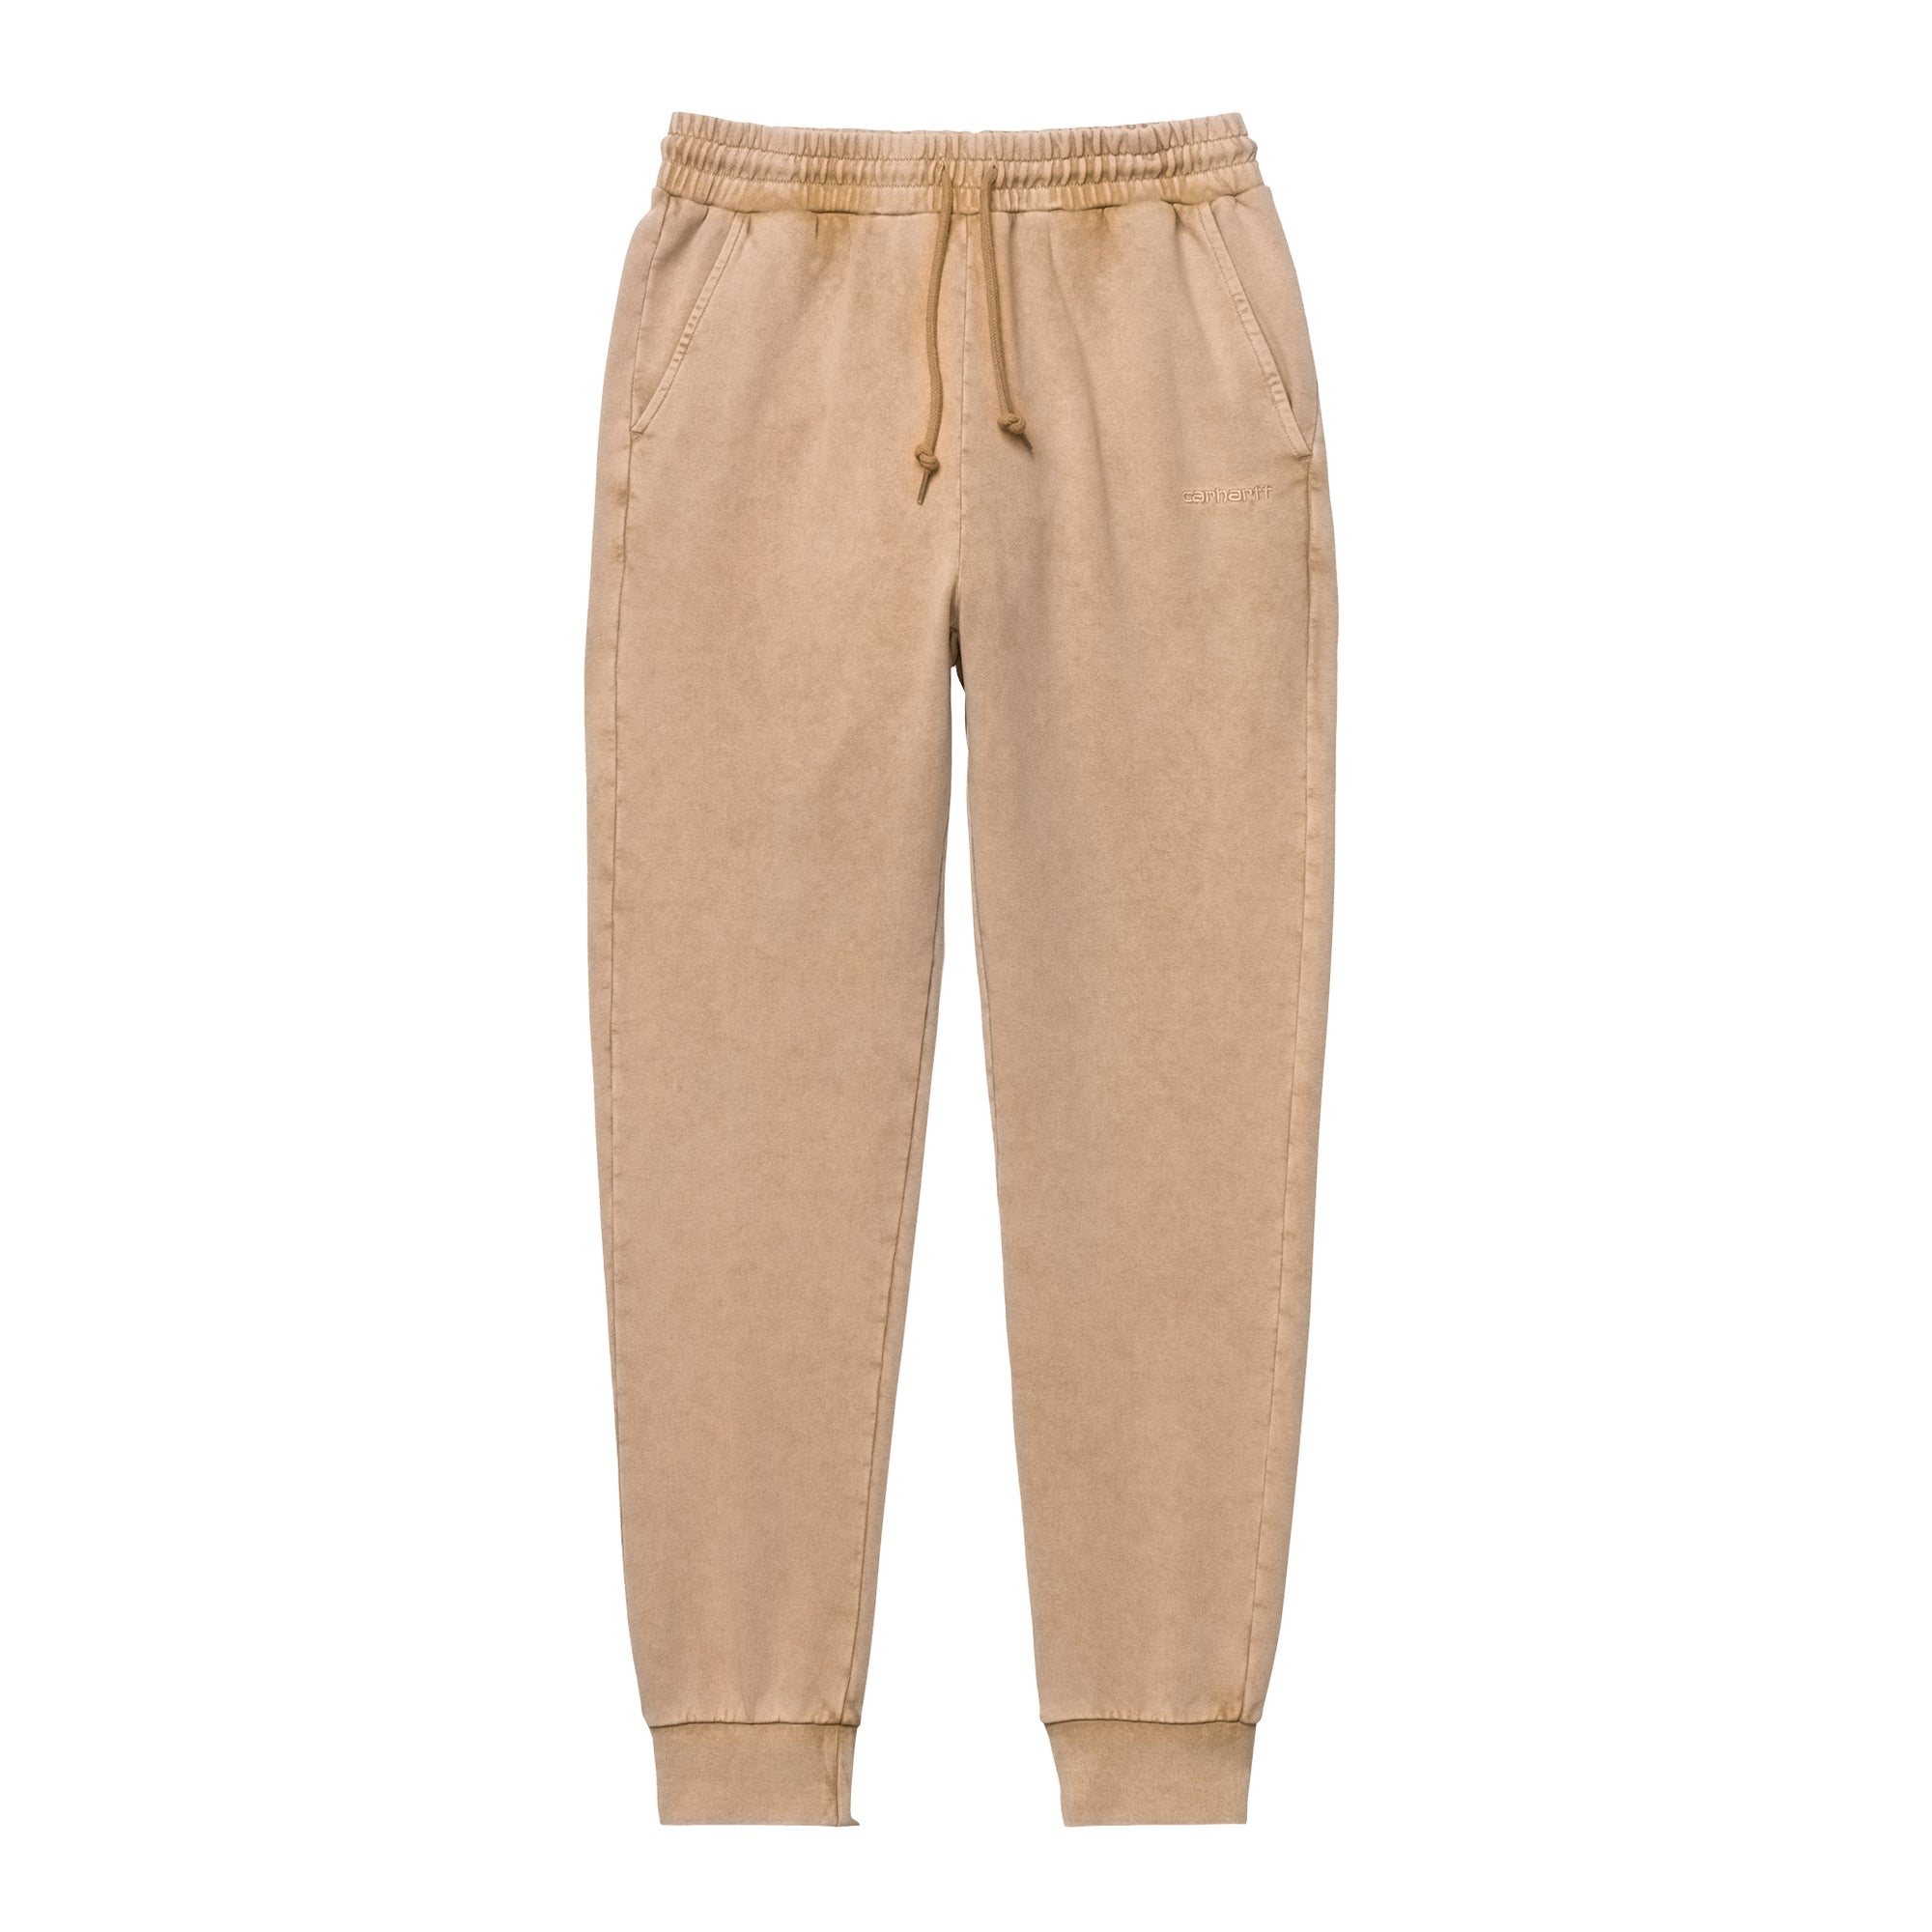 Carhartt WIP Womens Mosby Script Sweat Pant: Dusty Hamilton Brown - The Union Project